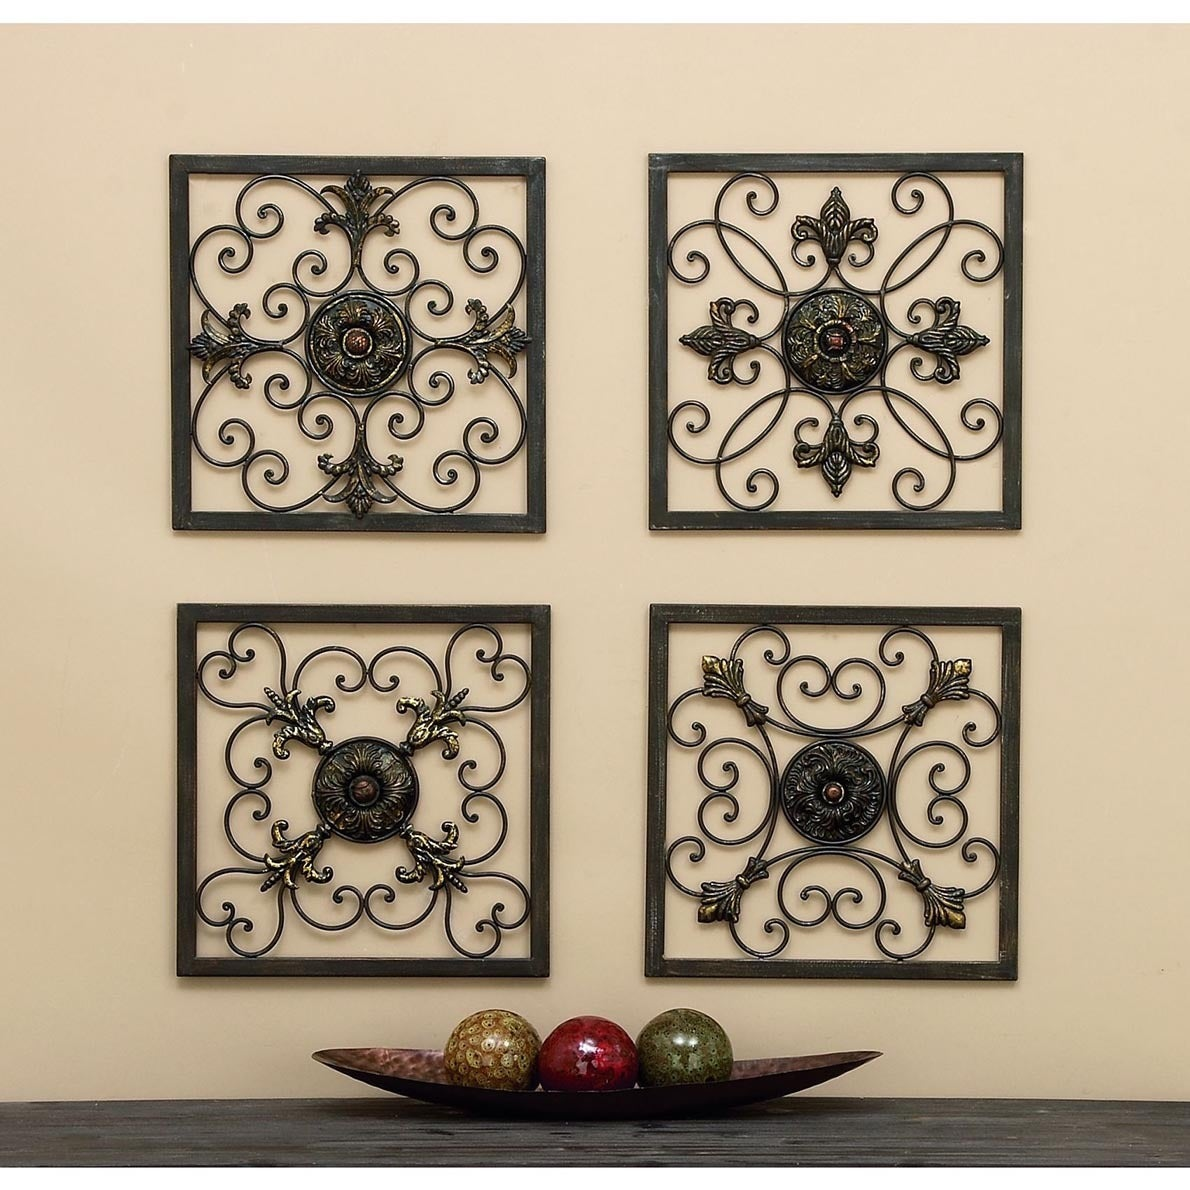 Laundry Room Wall Plaques Stunning Wall Plaques  Wall Plate Design Ideas Inspiration Design